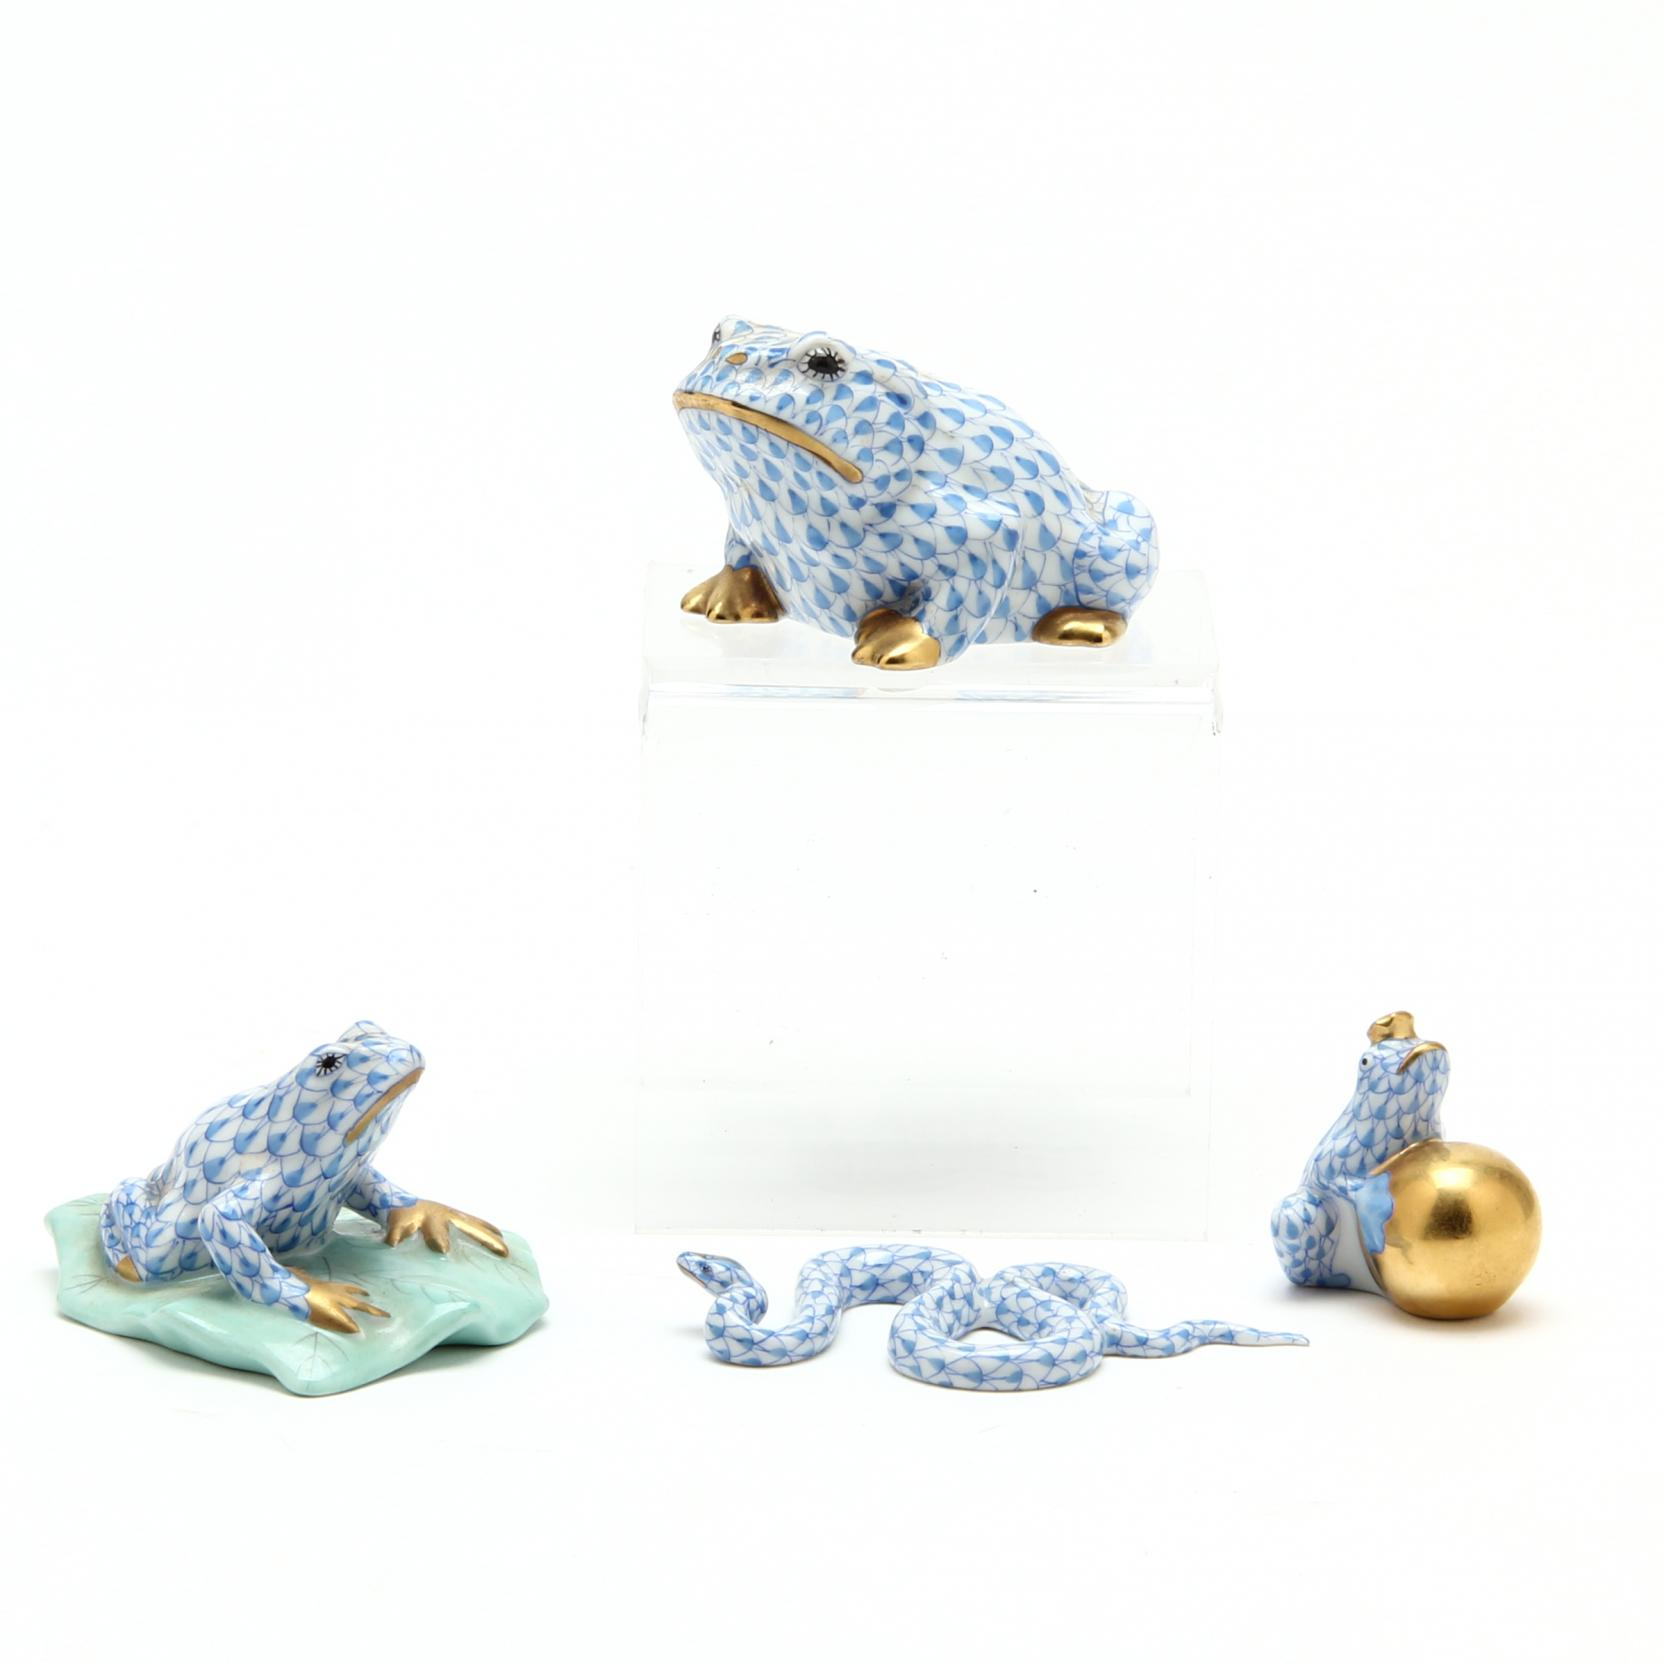 three-herend-frog-figurines-and-a-snake